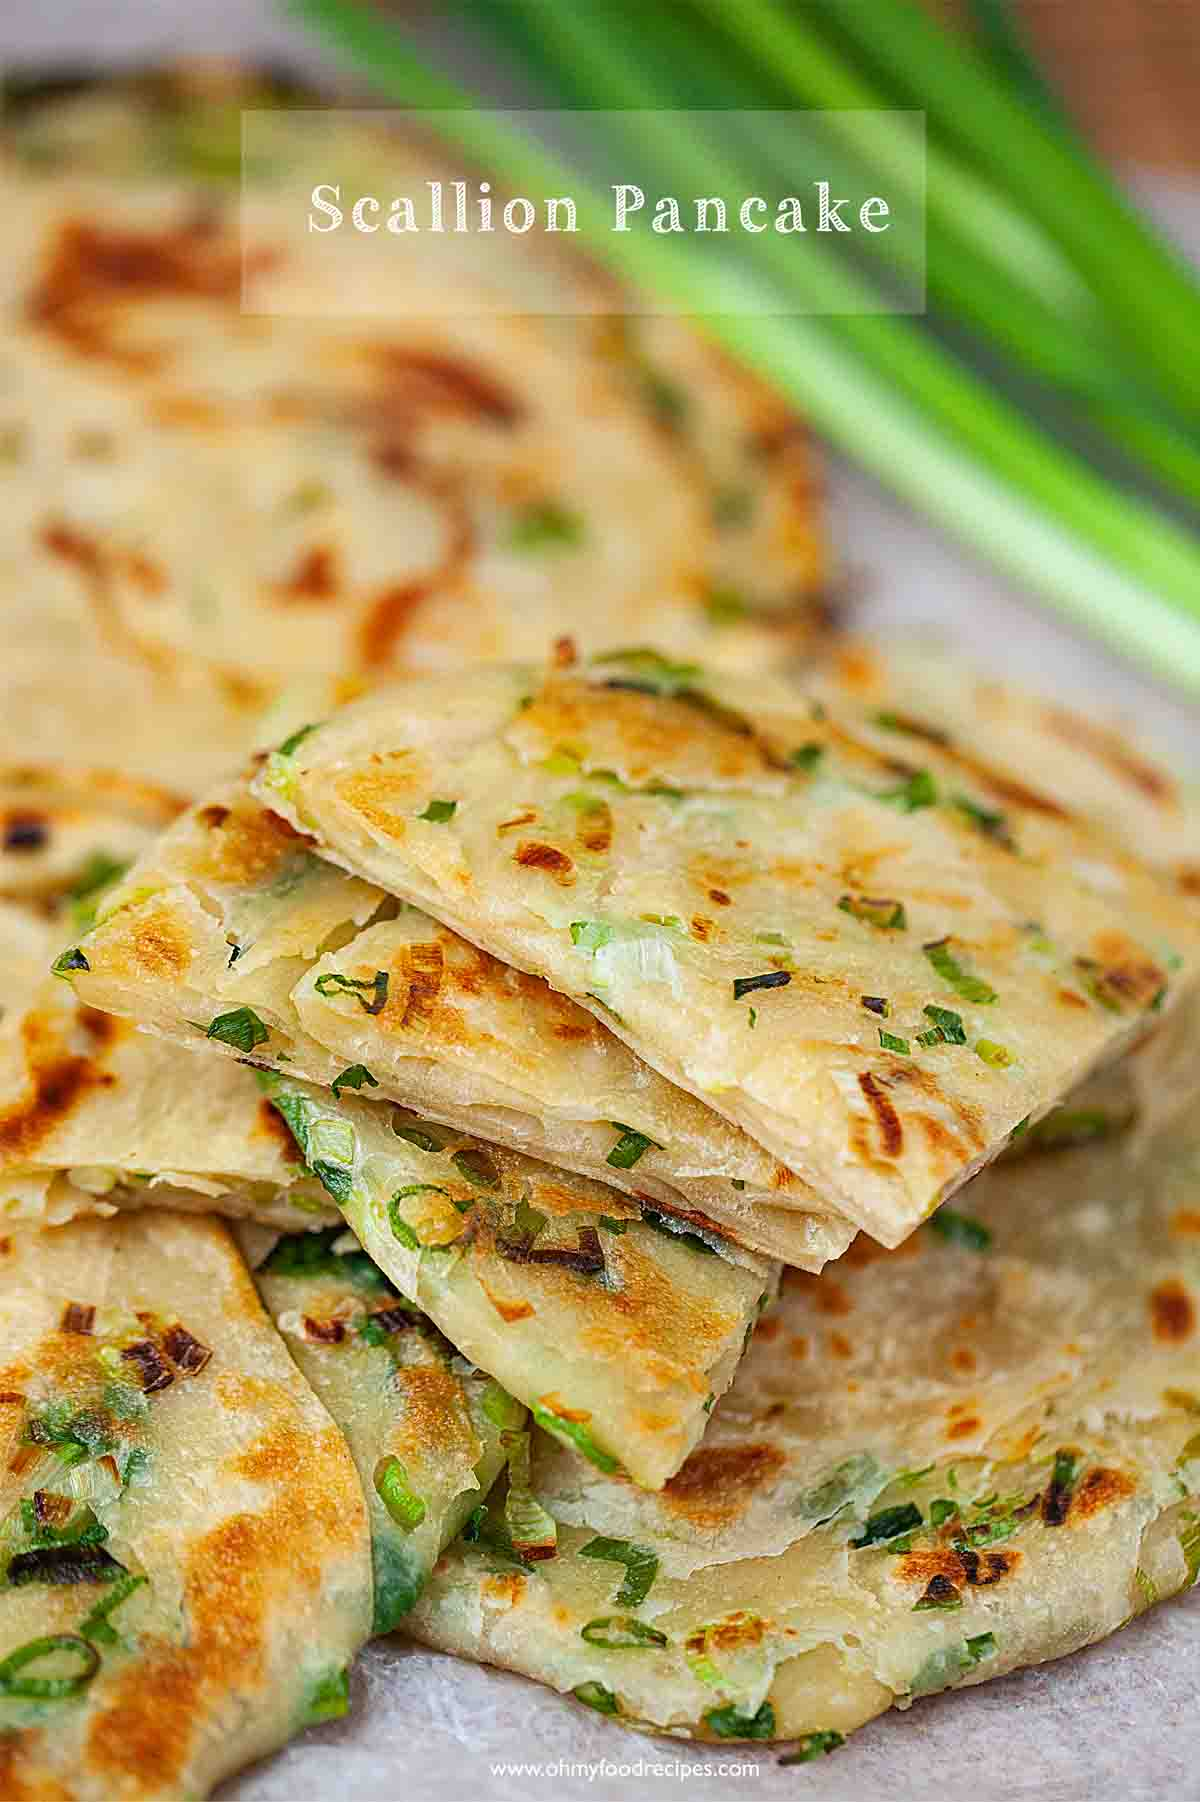 Scallion pancakes cut and stack up